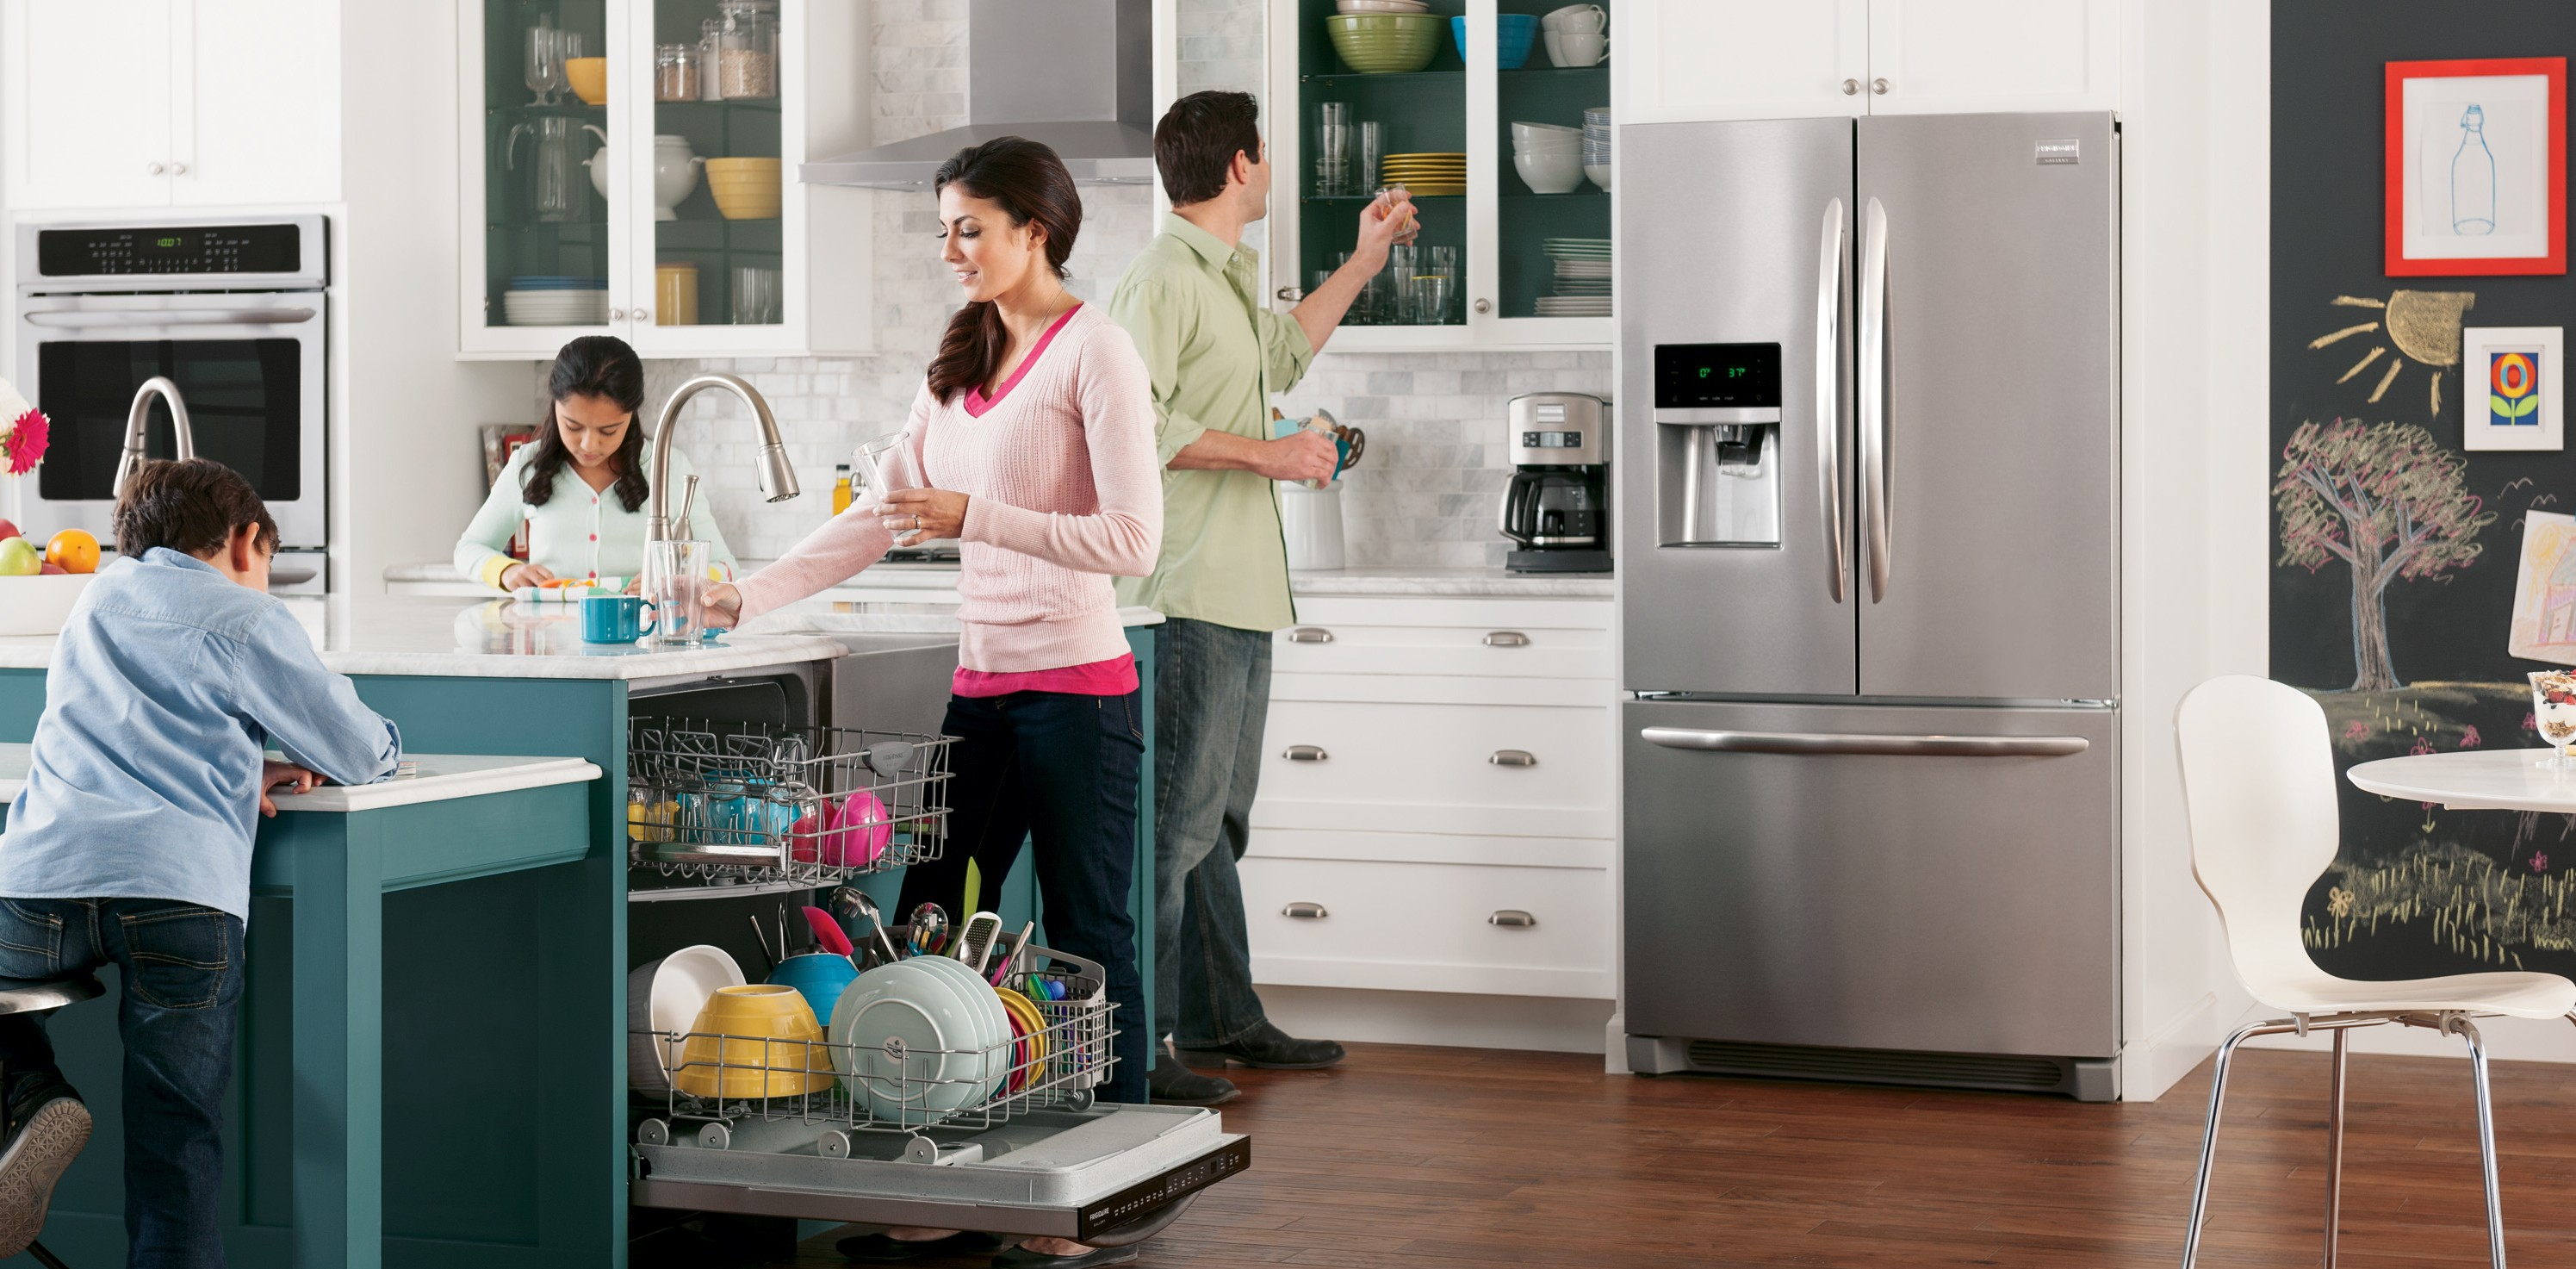 Uncategorized Hhgregg Kitchen Appliances kitchen appliances articles hhgregg family in a kitchen